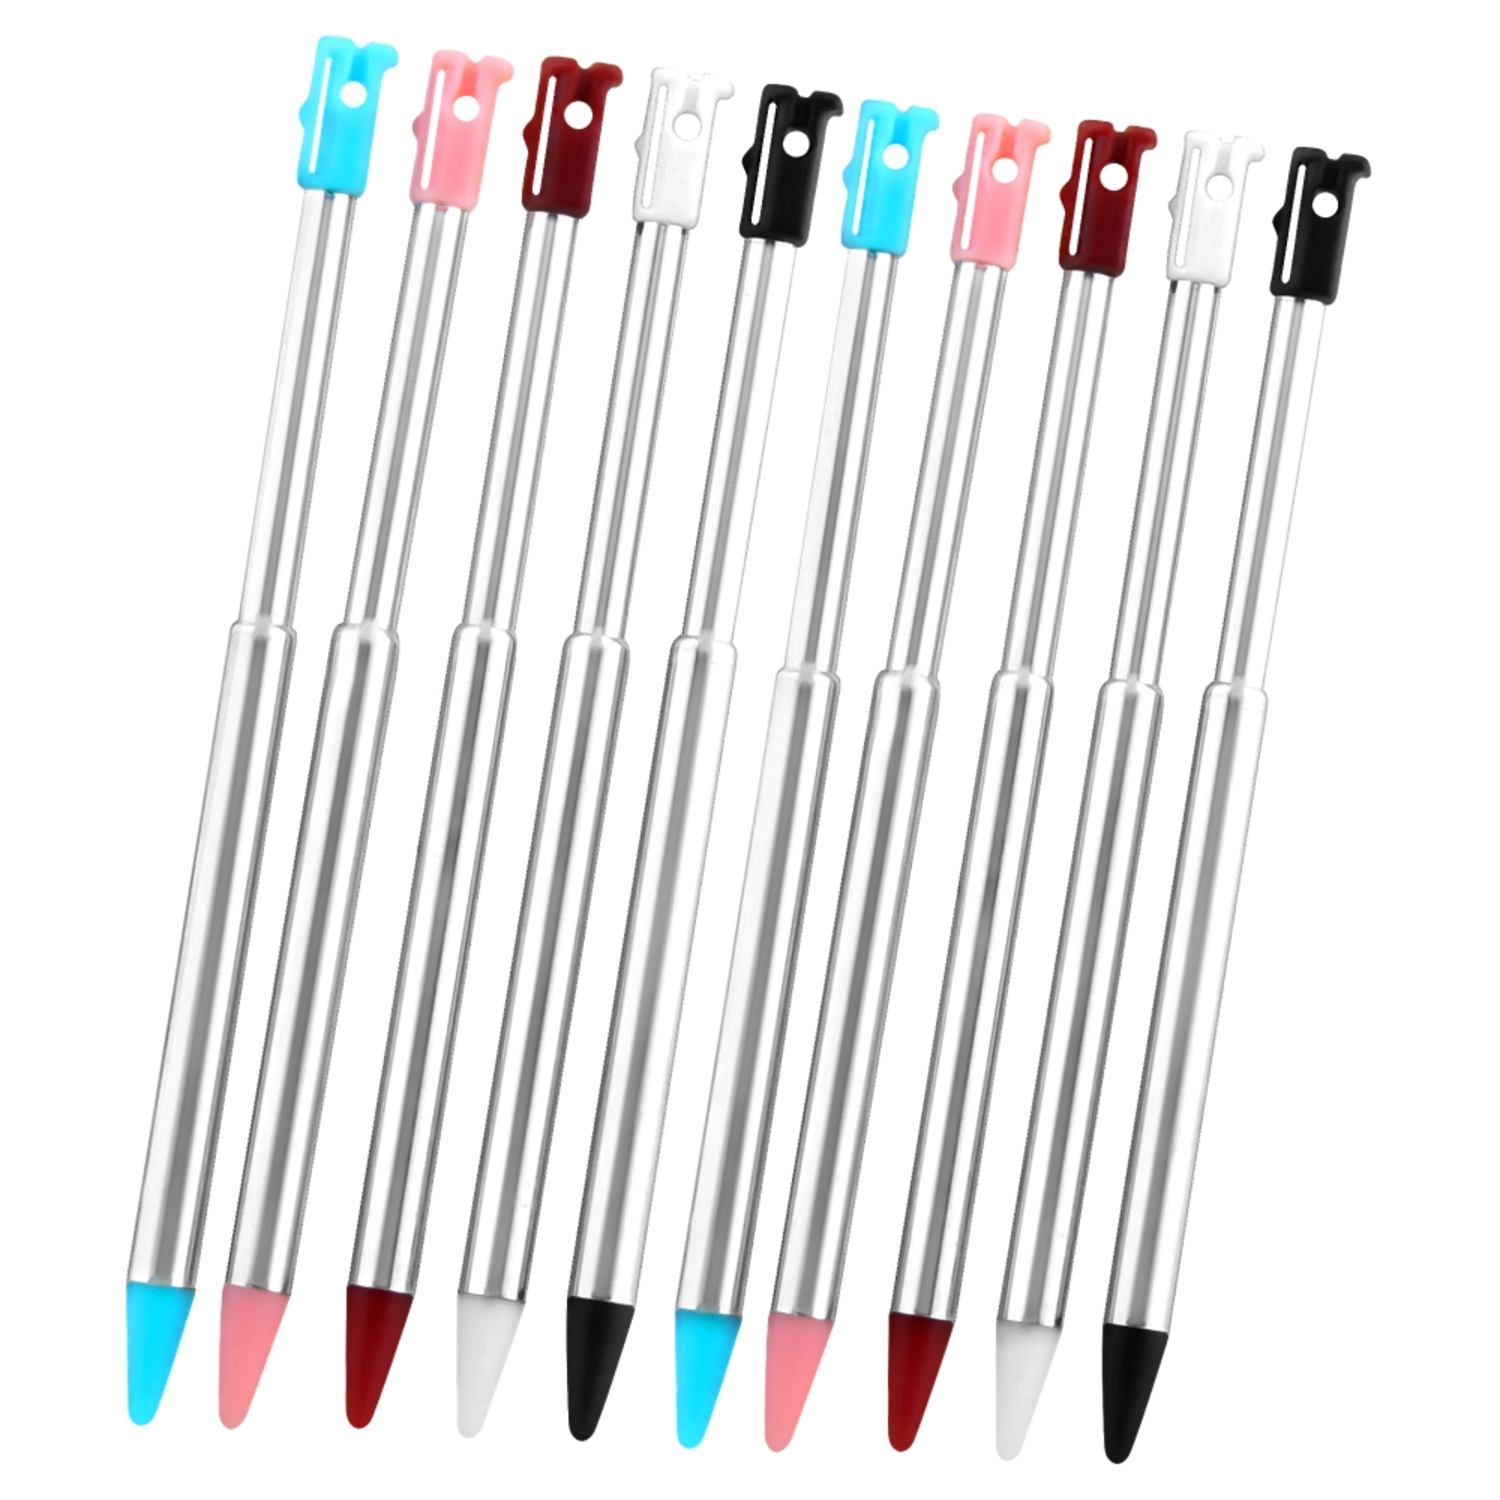 Insten Retractable Stylus For Nintendo 3DS, 10-pack